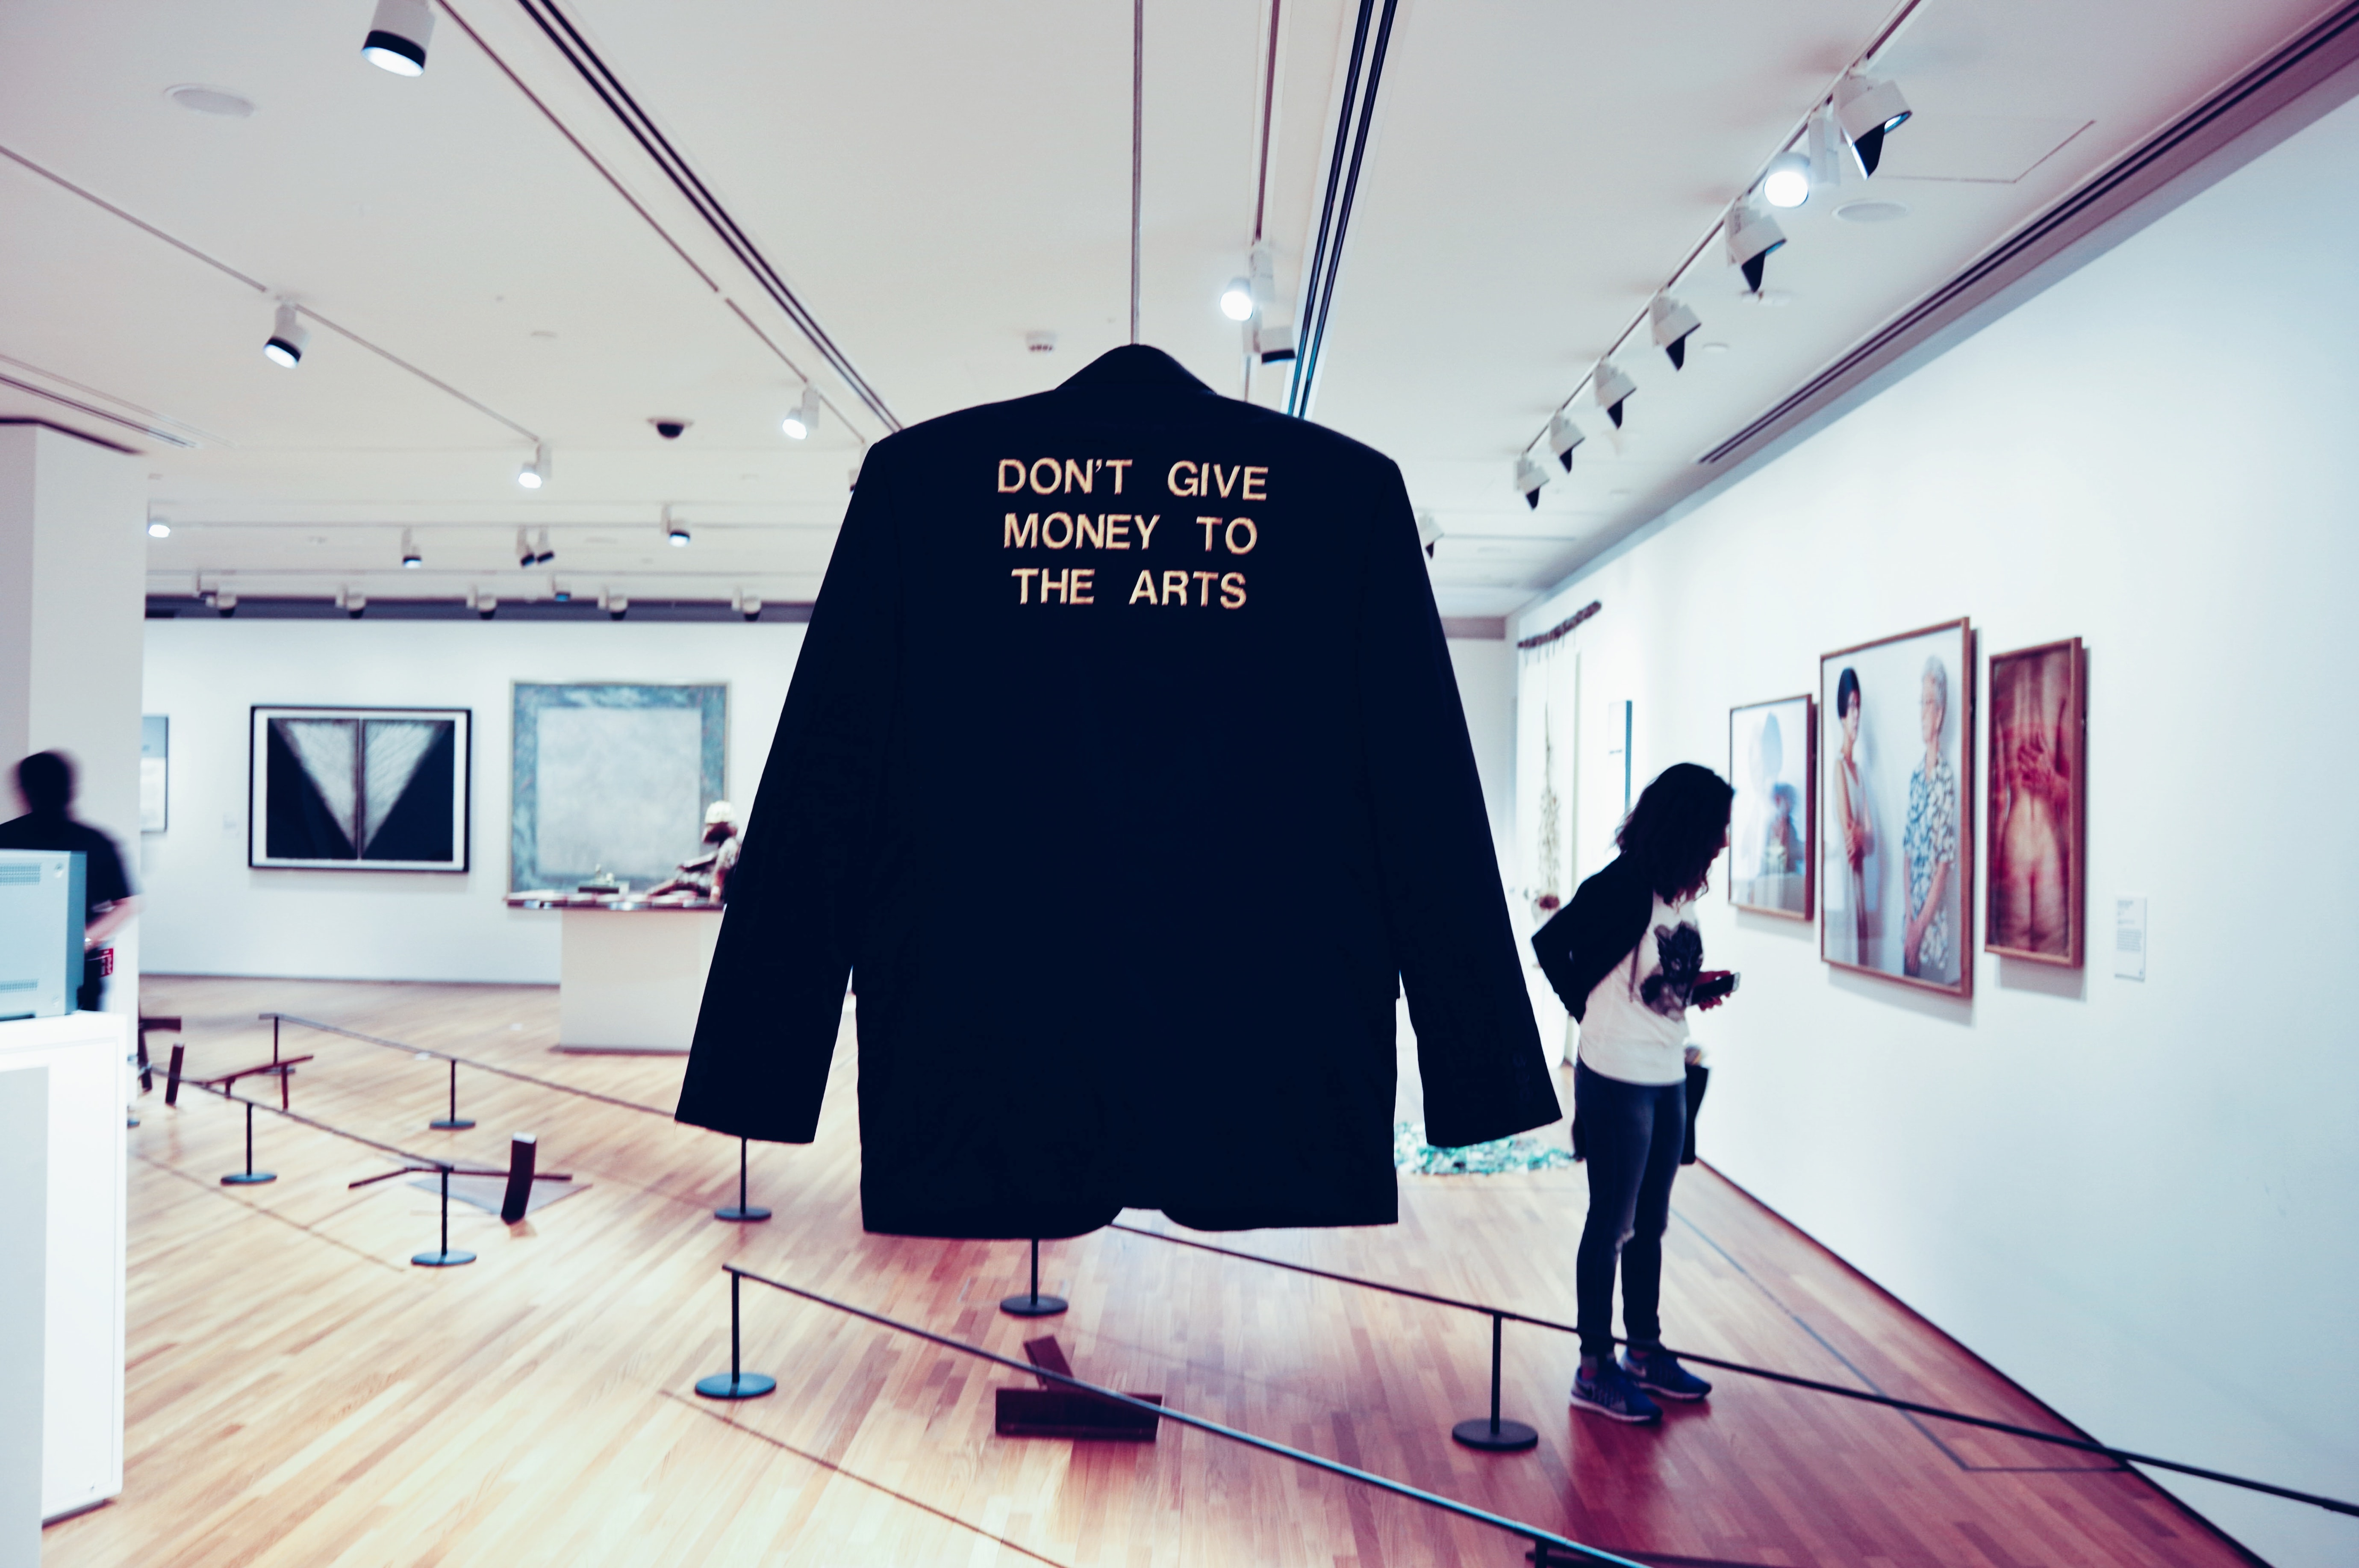 Gold text slogan on blazer hanging in art gallery with woman viewing art, National Gallery Singapore